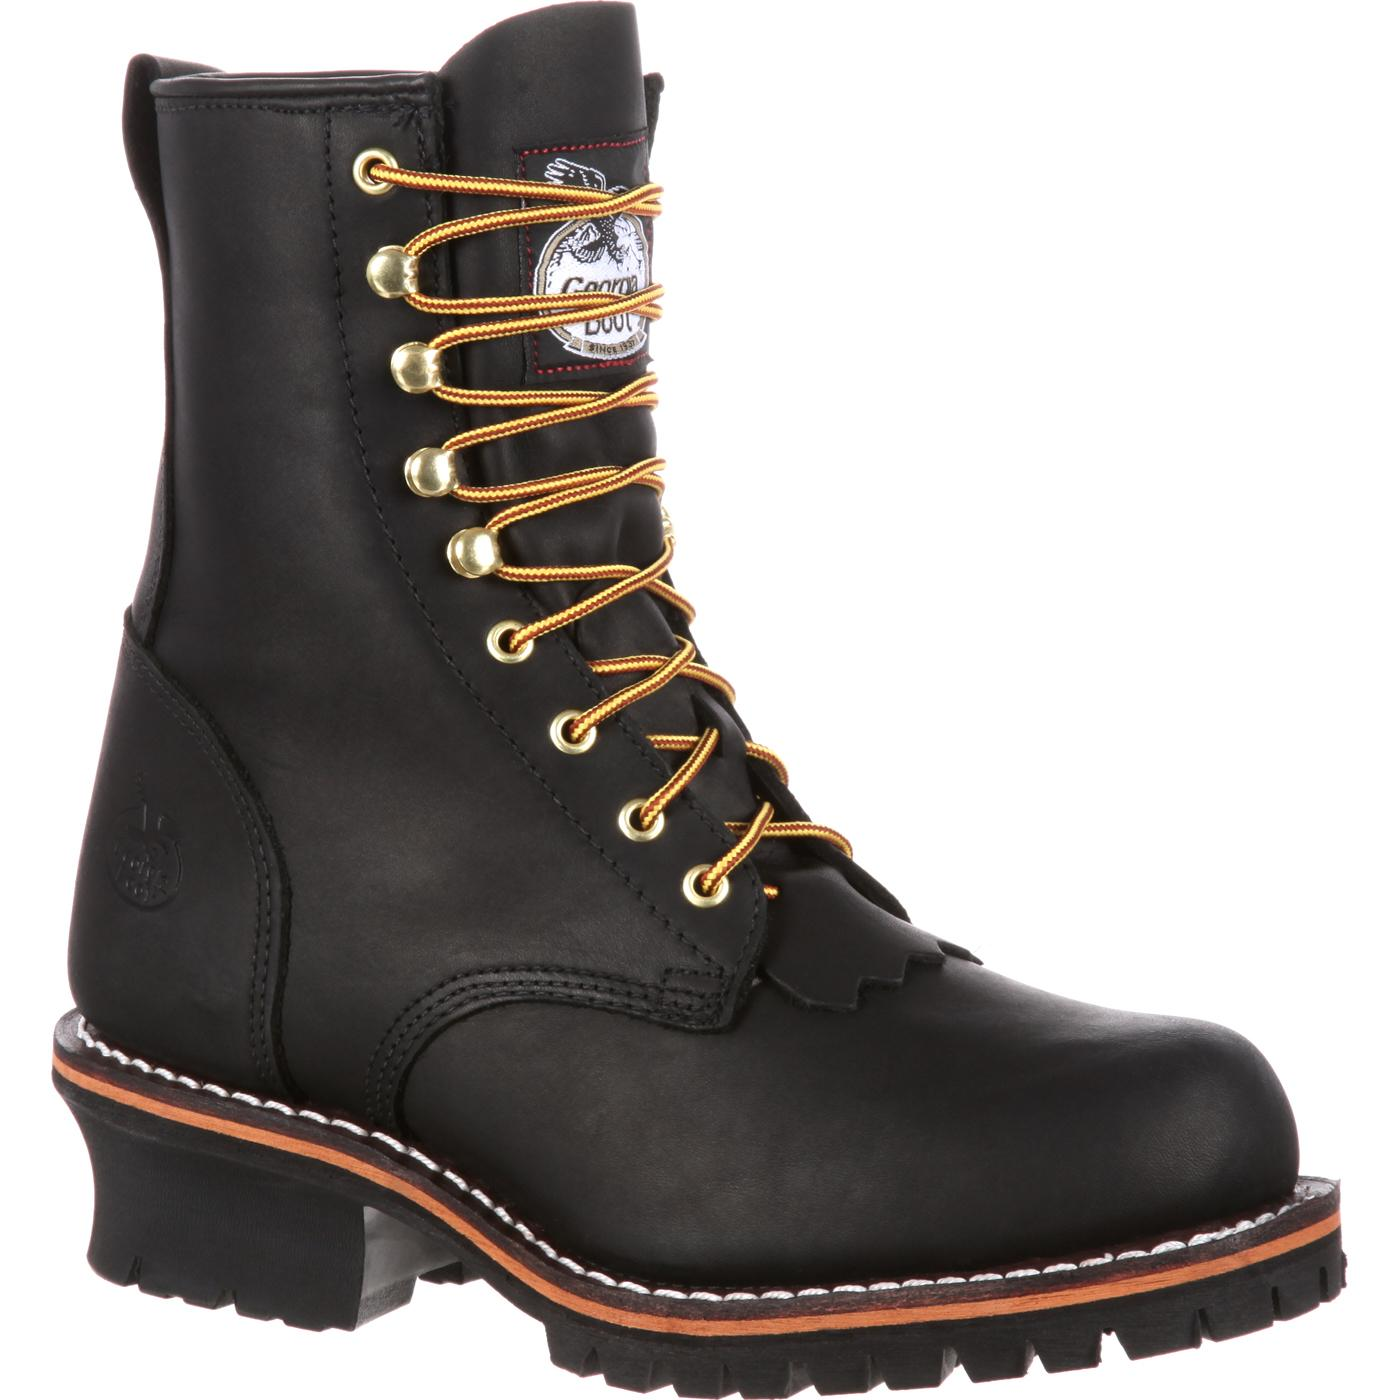 Men S 8 Quot Black Logger Work Boots Georgia Boot Style G8100